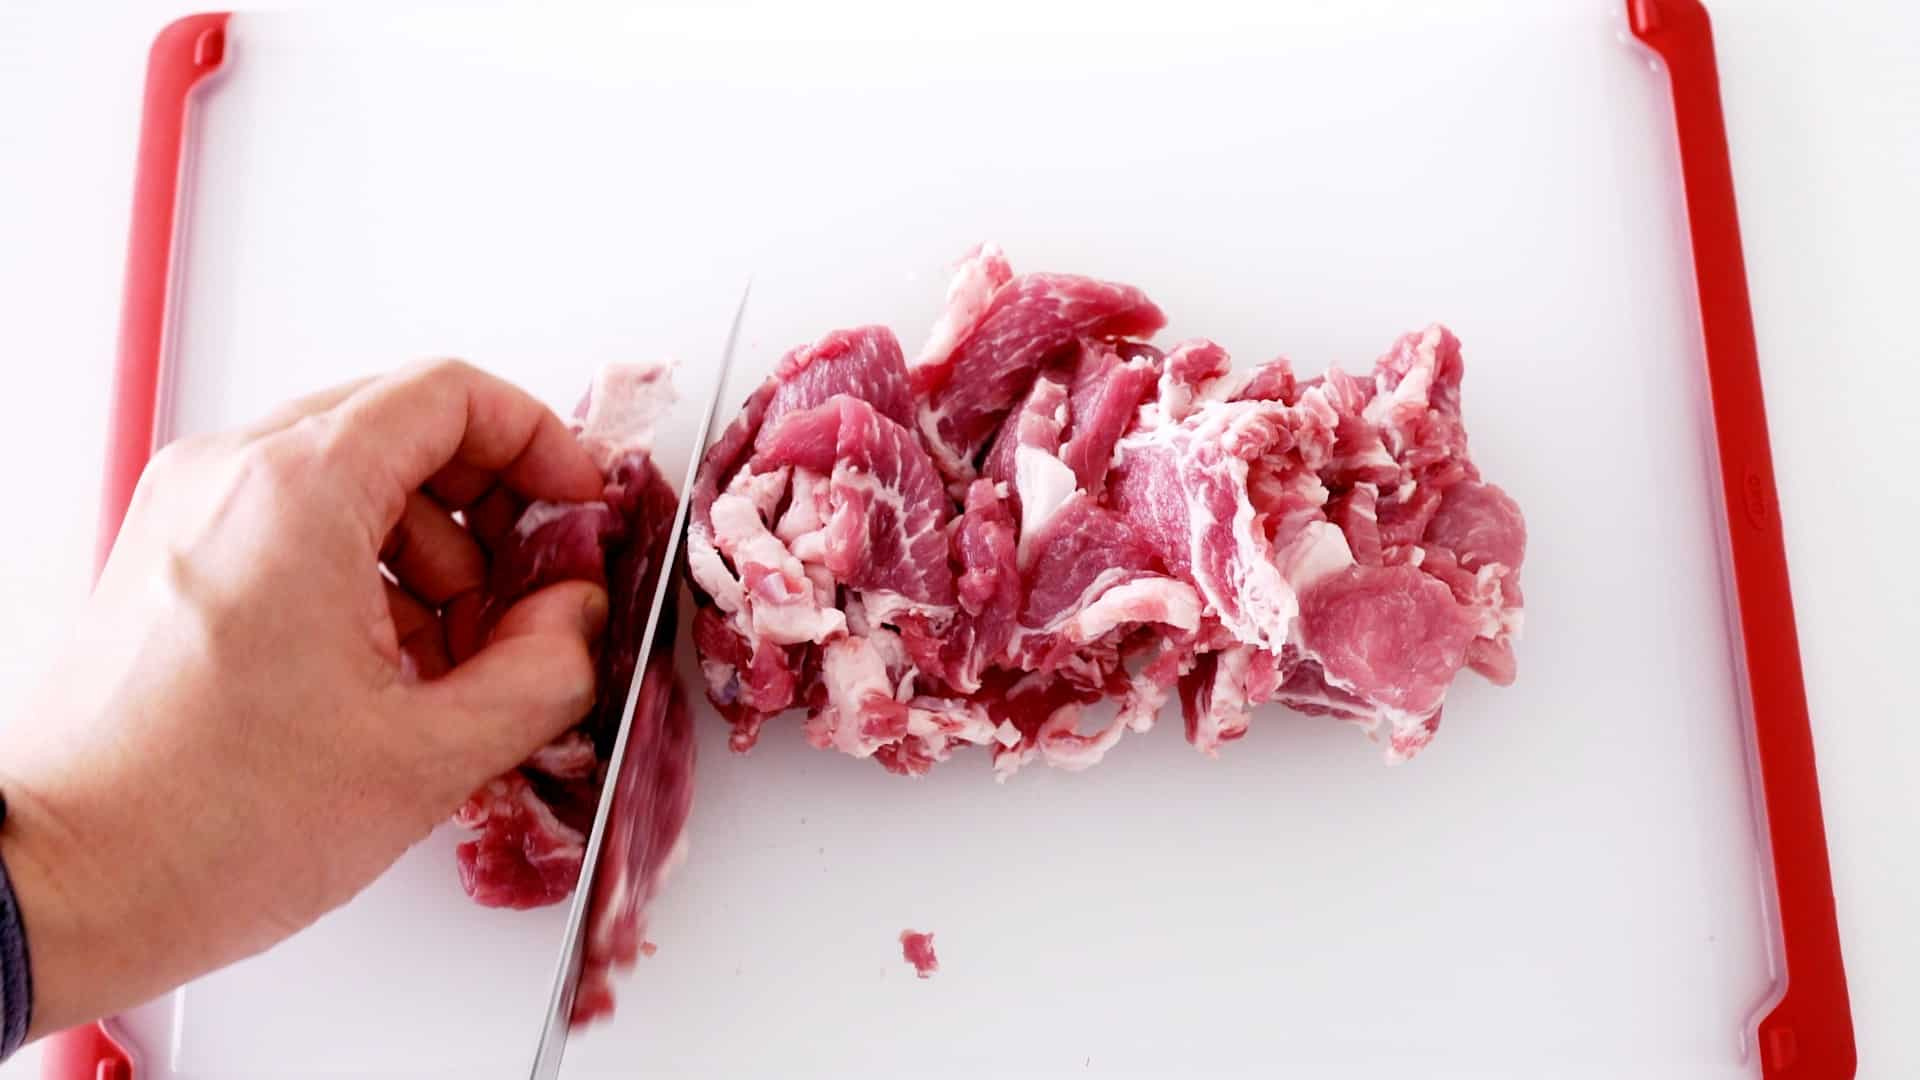 Slicing pork shoulder thinly for making Japanese Ginger Pork.